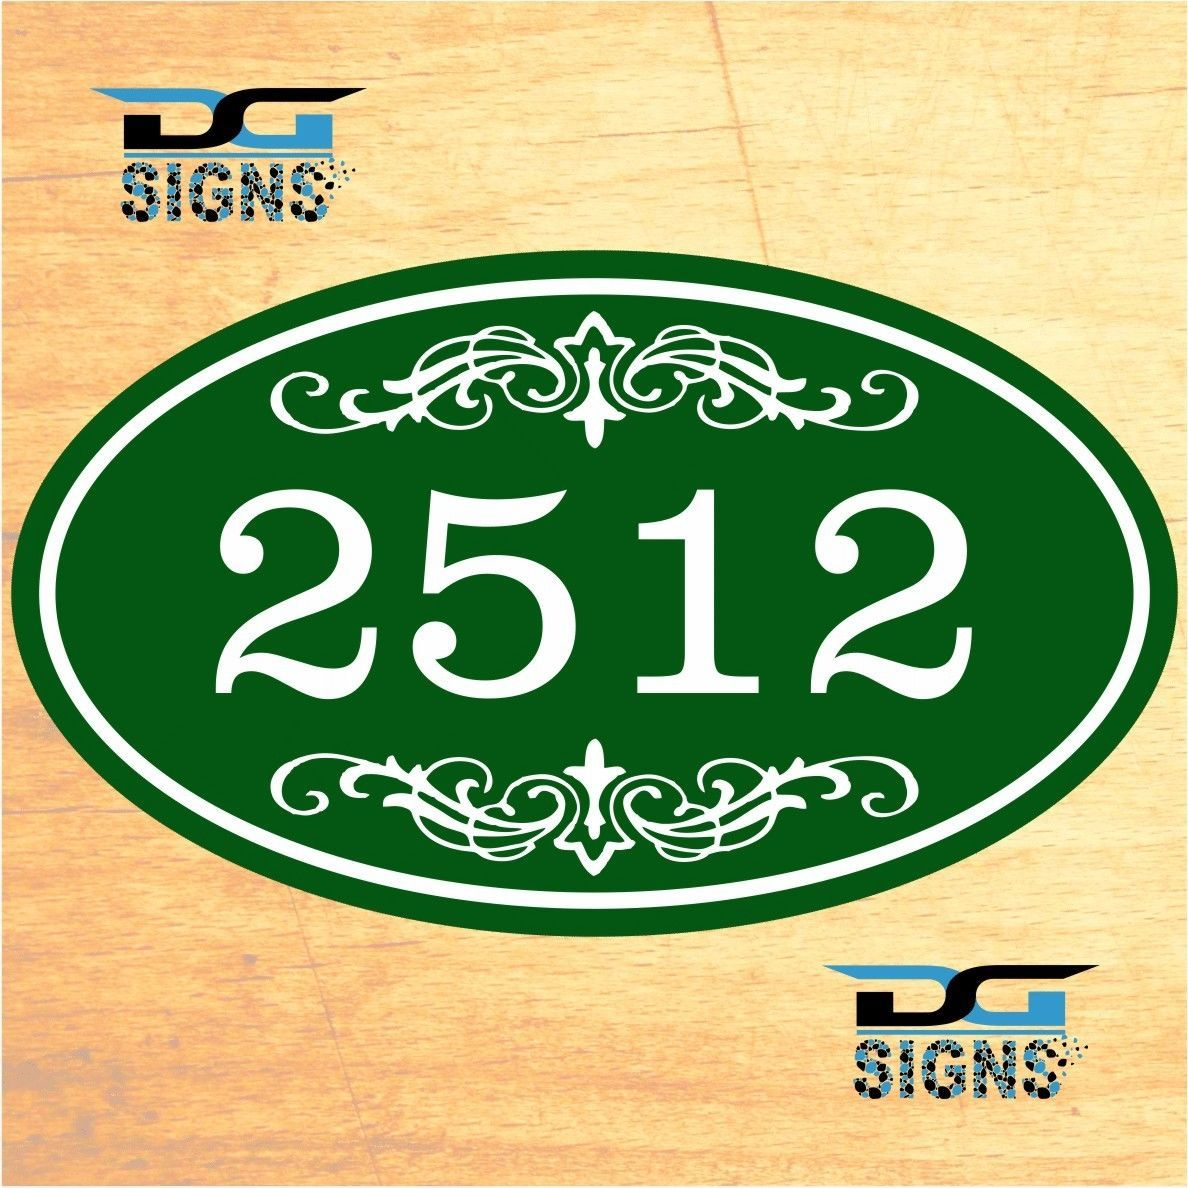 3008 personalized home address decorative custom plaque 12 x 7 aluminum sign ebay. Black Bedroom Furniture Sets. Home Design Ideas